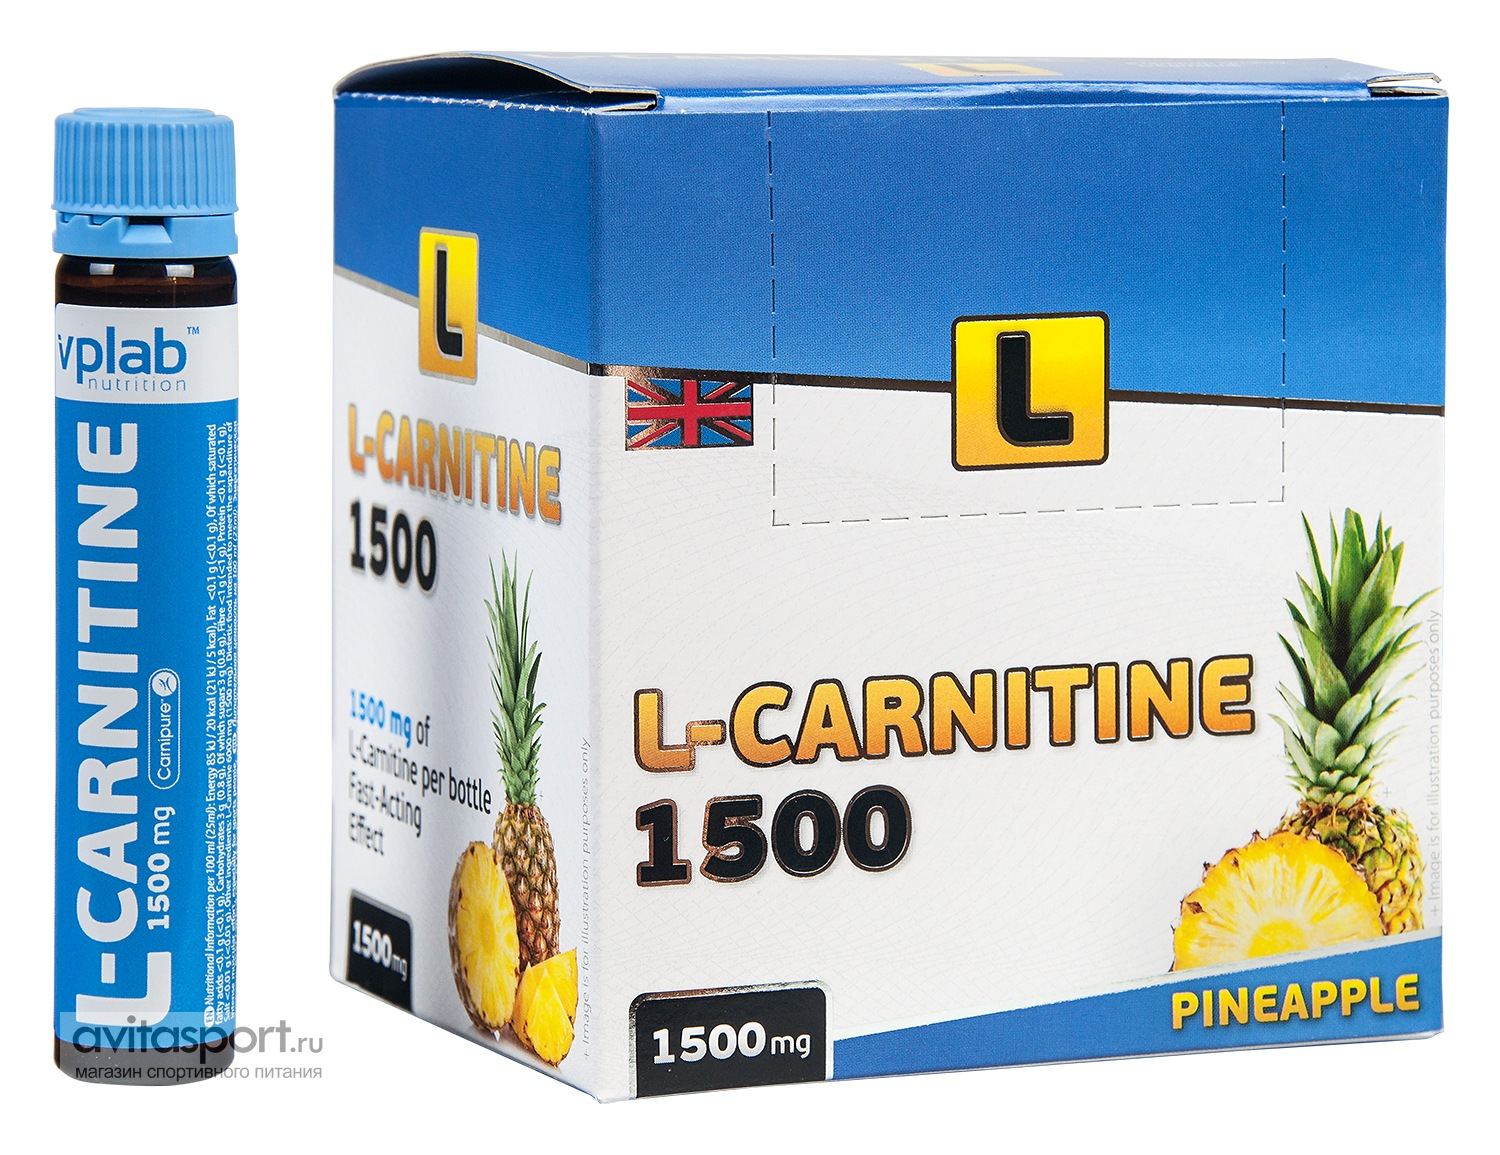 VP Laboratory L-Carnitine 1500 мг / 20 ампул